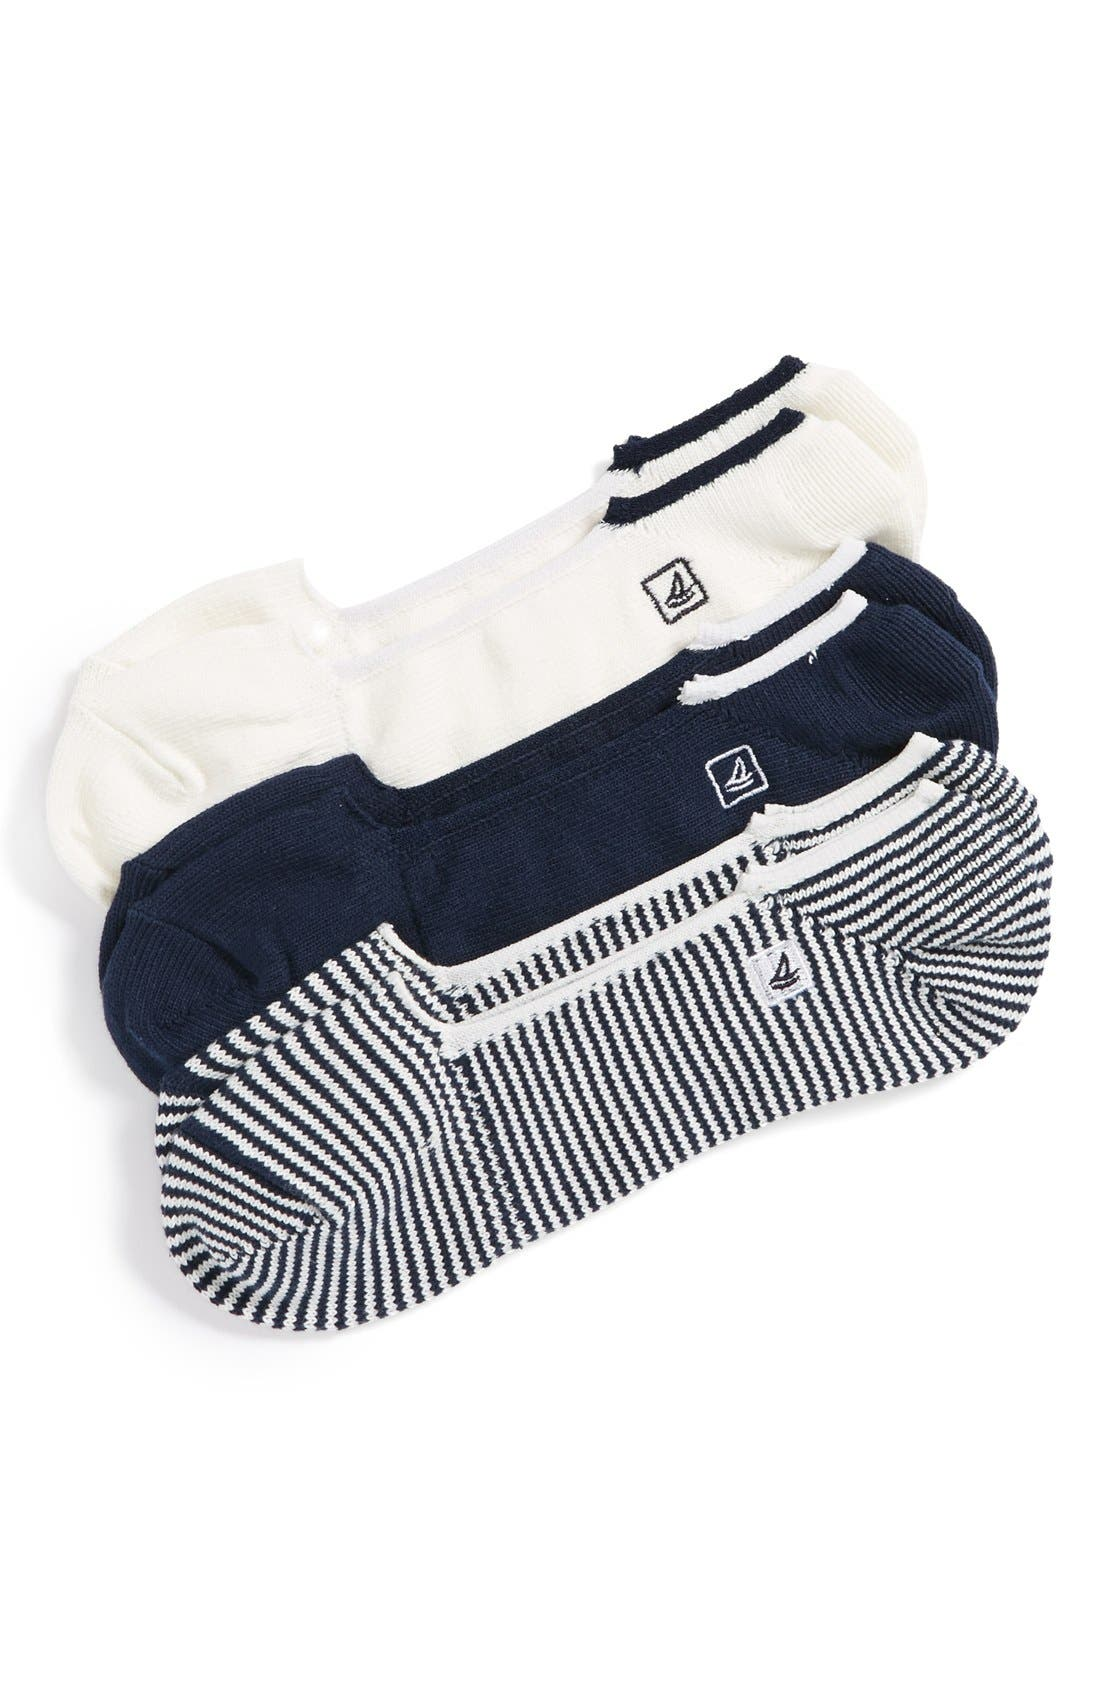 Skimmers Feed Assorted 3-Pack Socks,                         Main,                         color, Navy/ White